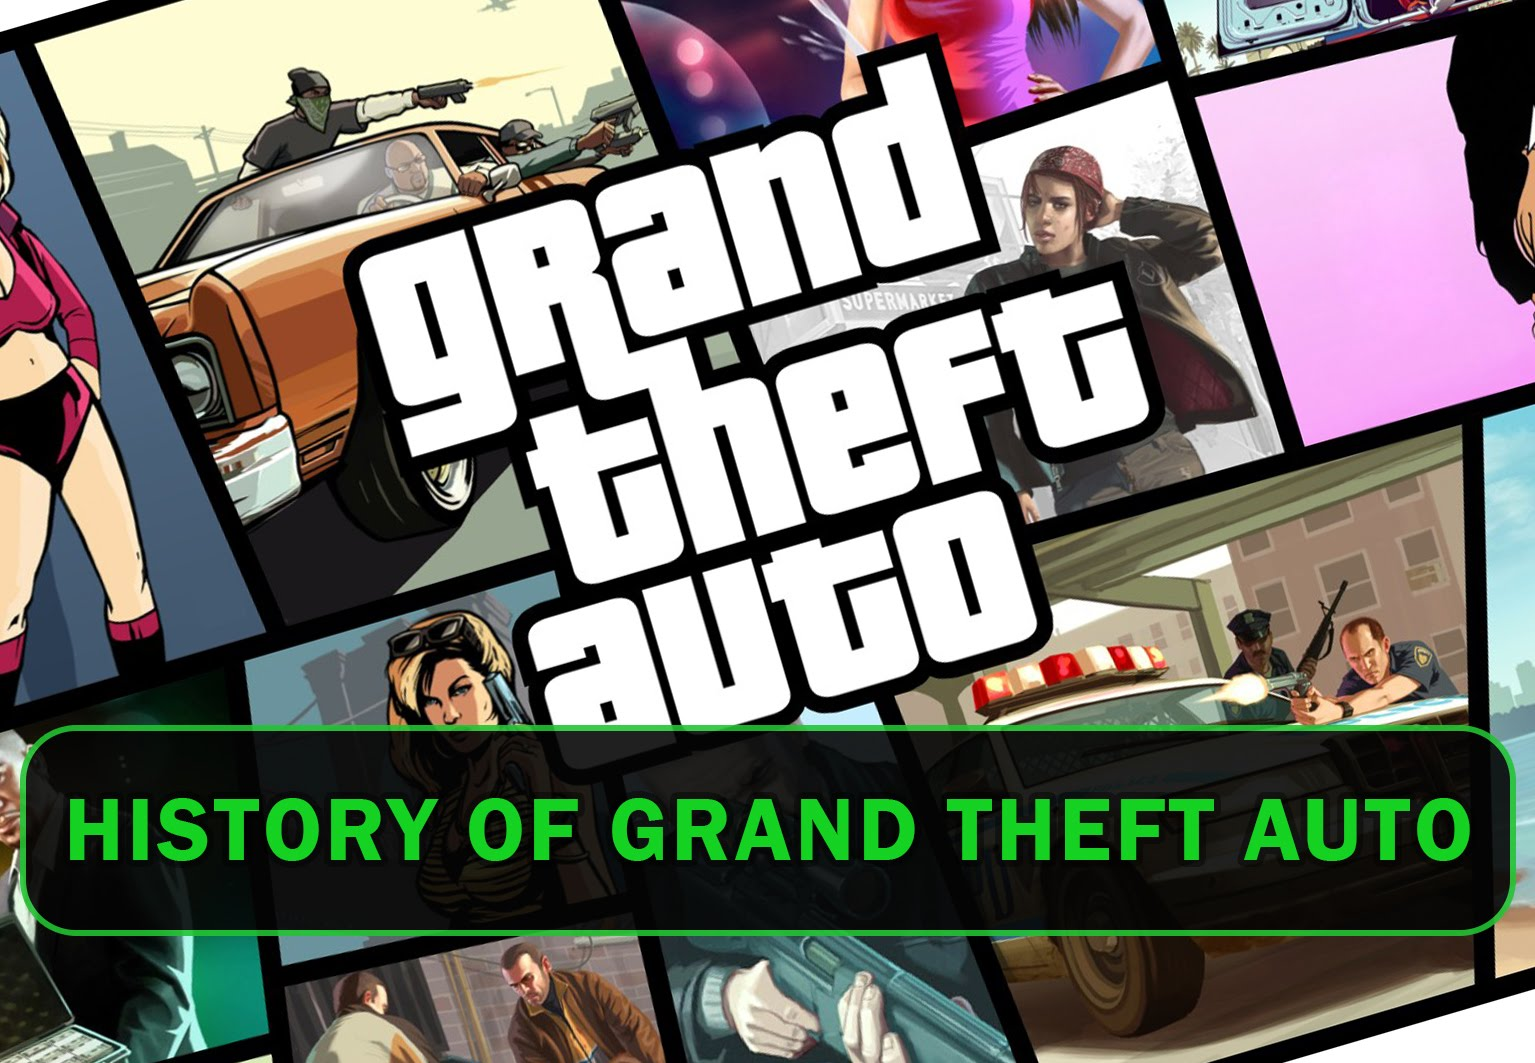 History of Grand Theft Auto (1997-2015)